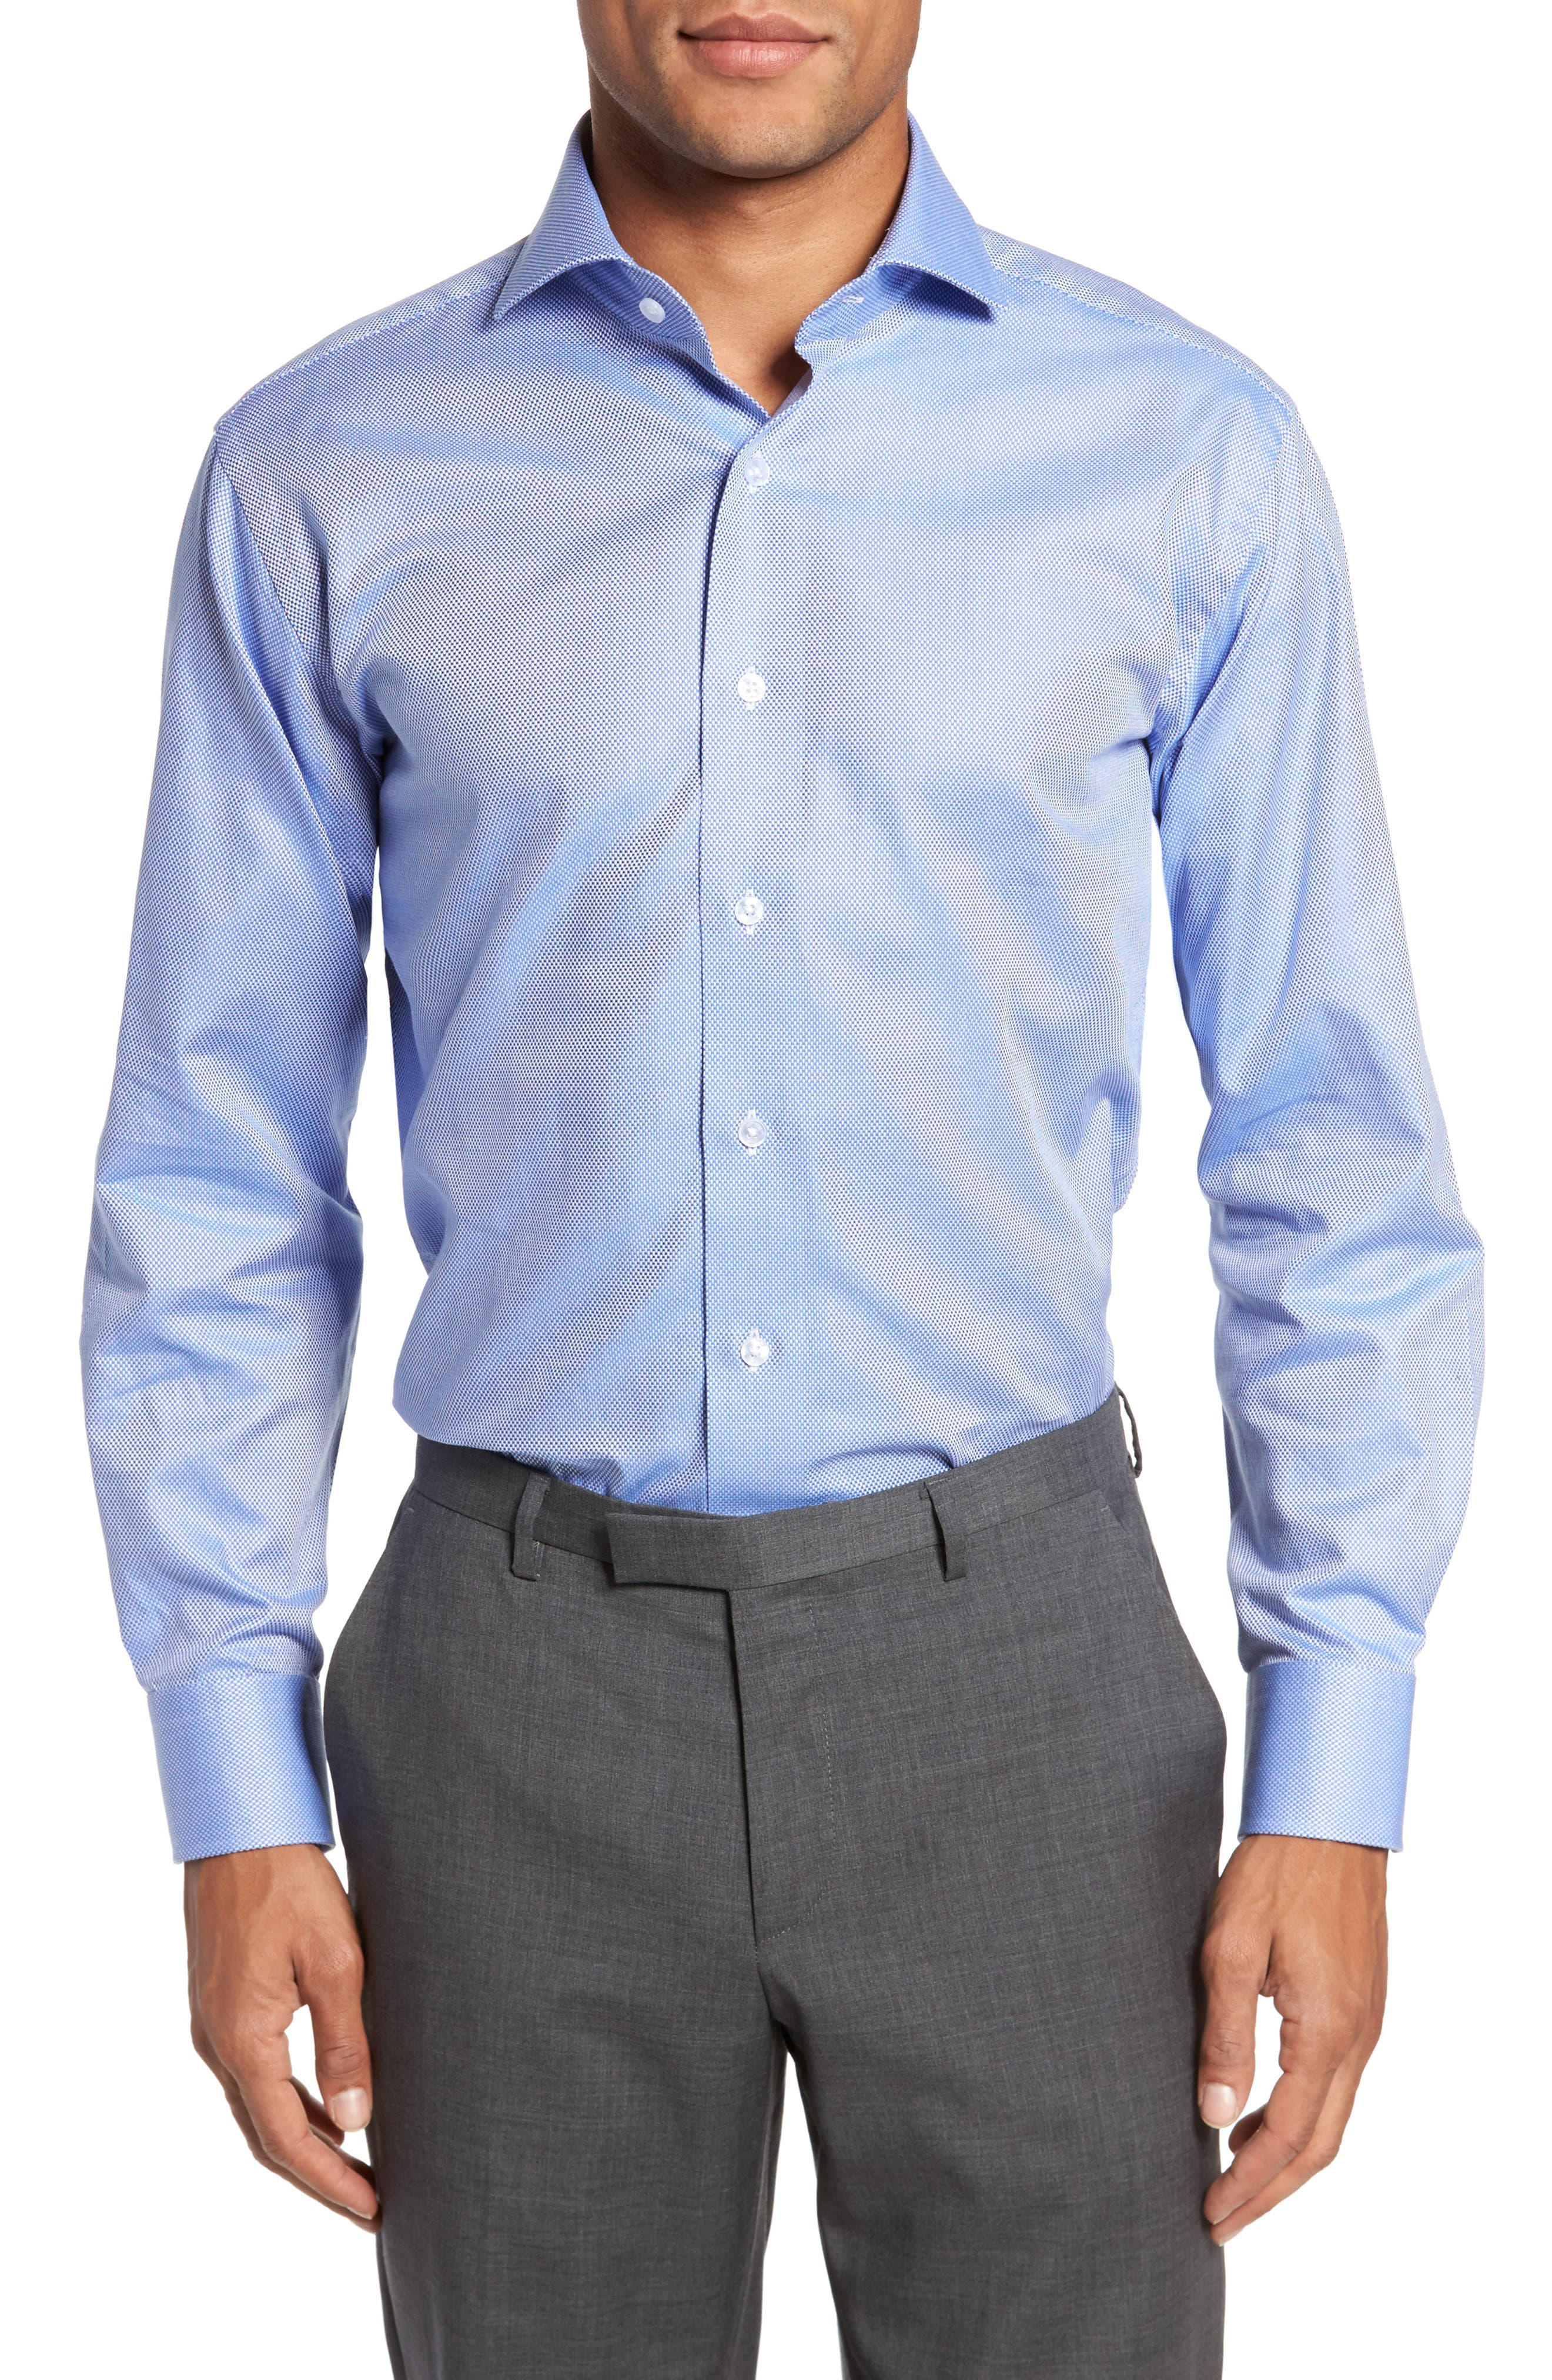 Main Image - Lorenzo Uomo Trim Fit Texture Dress Shirt